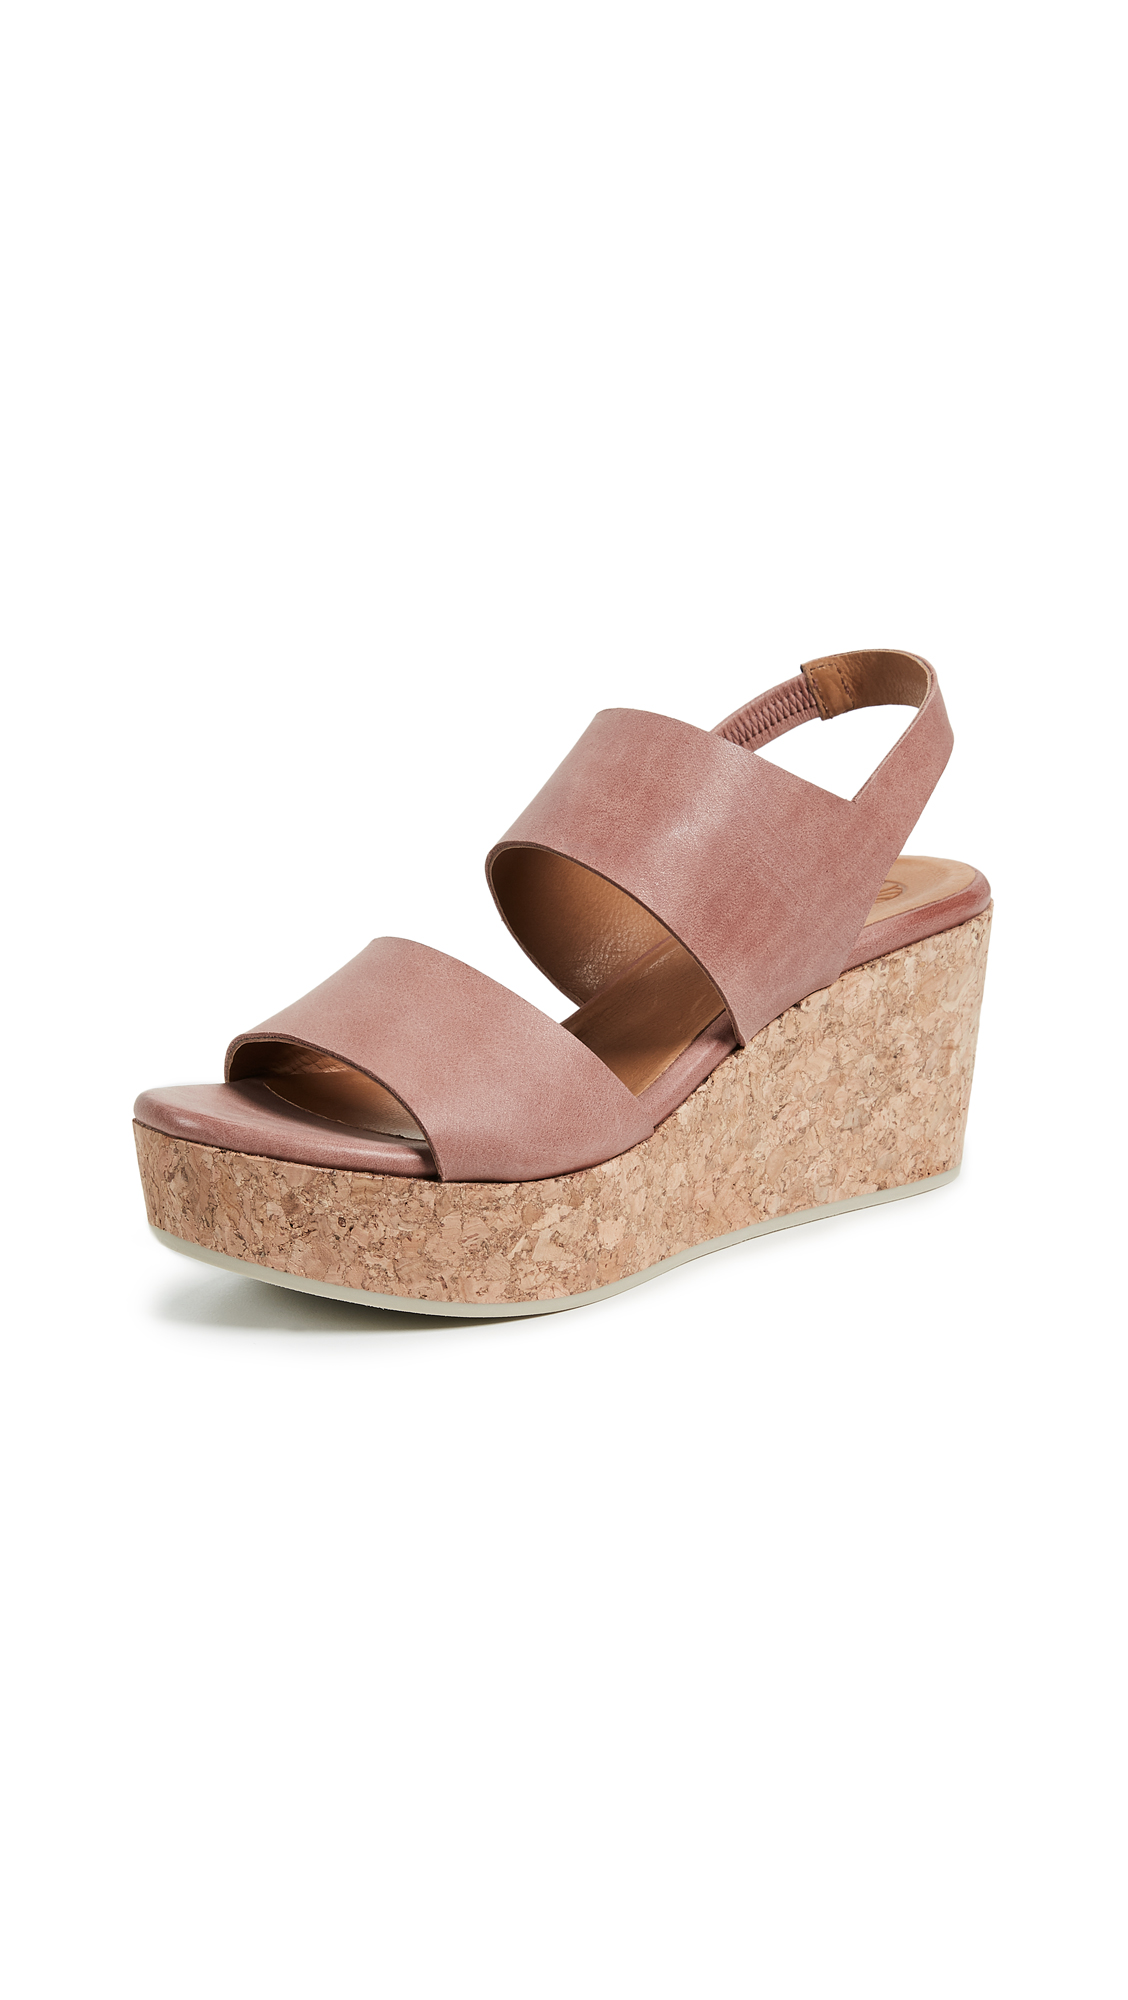 Coclico Shoes Glassy Platform Sandals - Rose